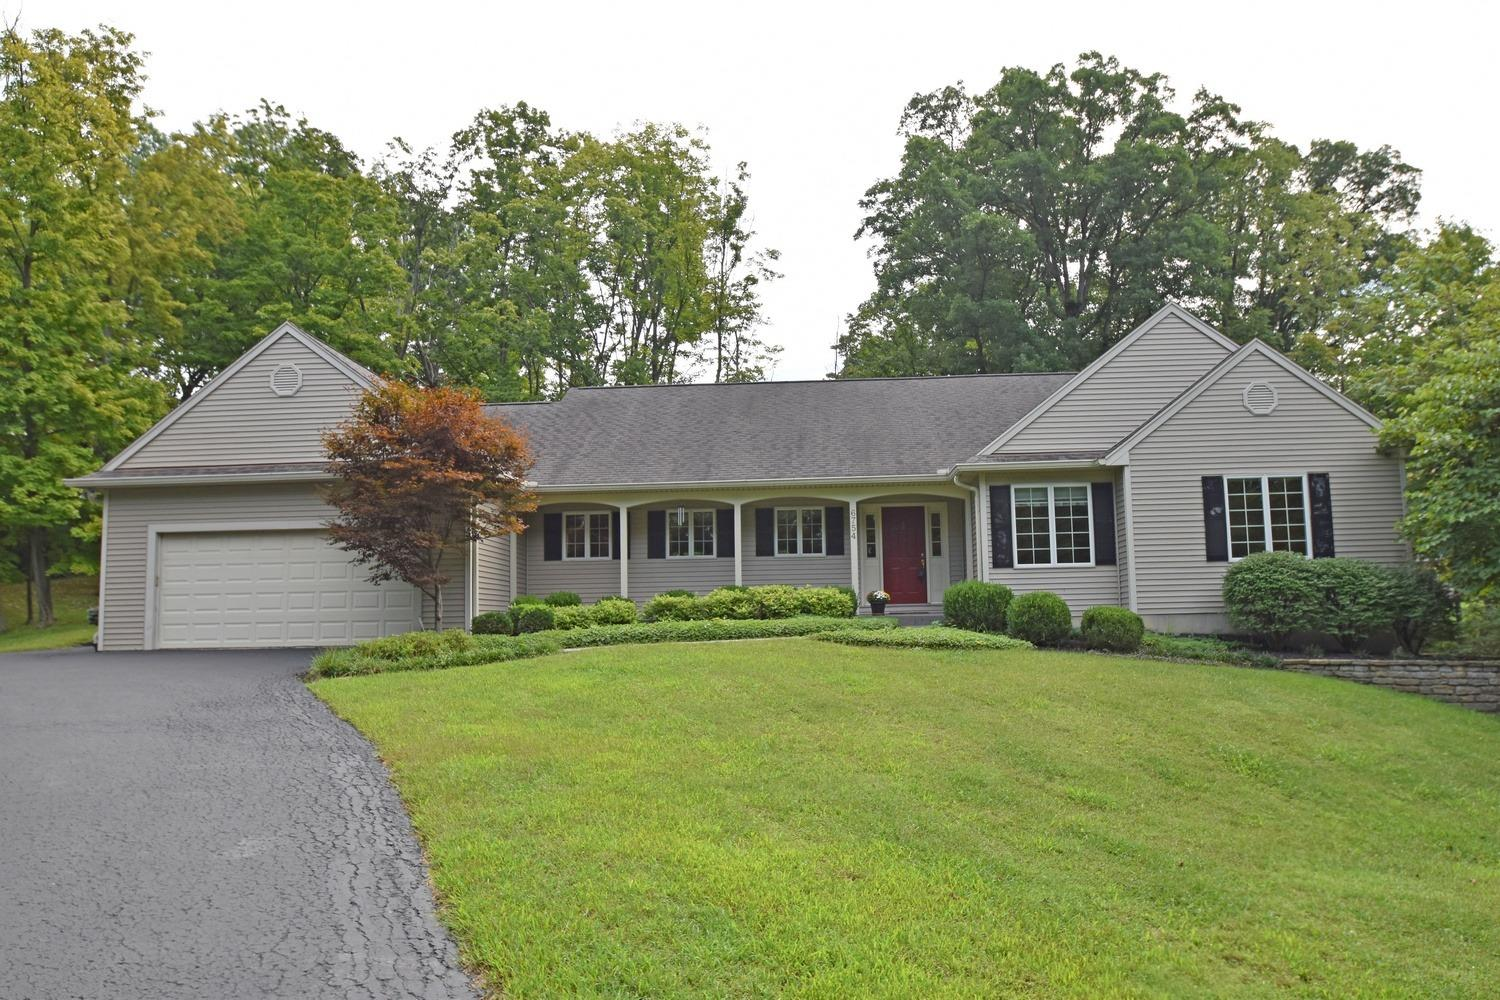 Property for sale at 6754 Ken Arbre Drive, Madeira,  OH 45236